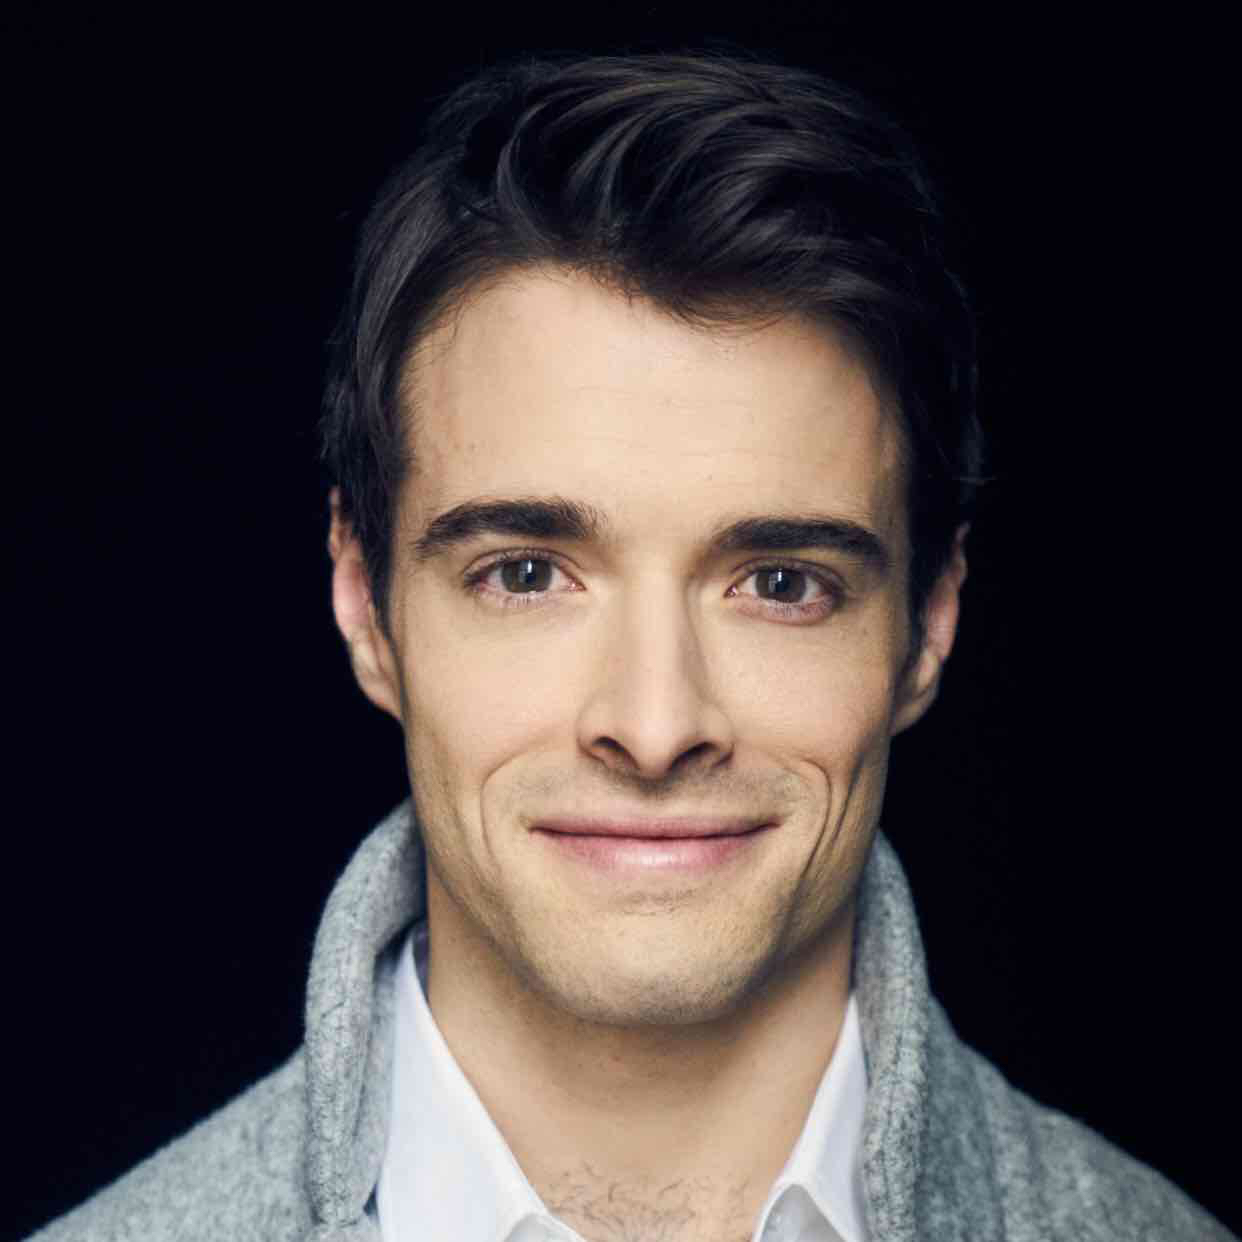 Avatar of Corey Cott